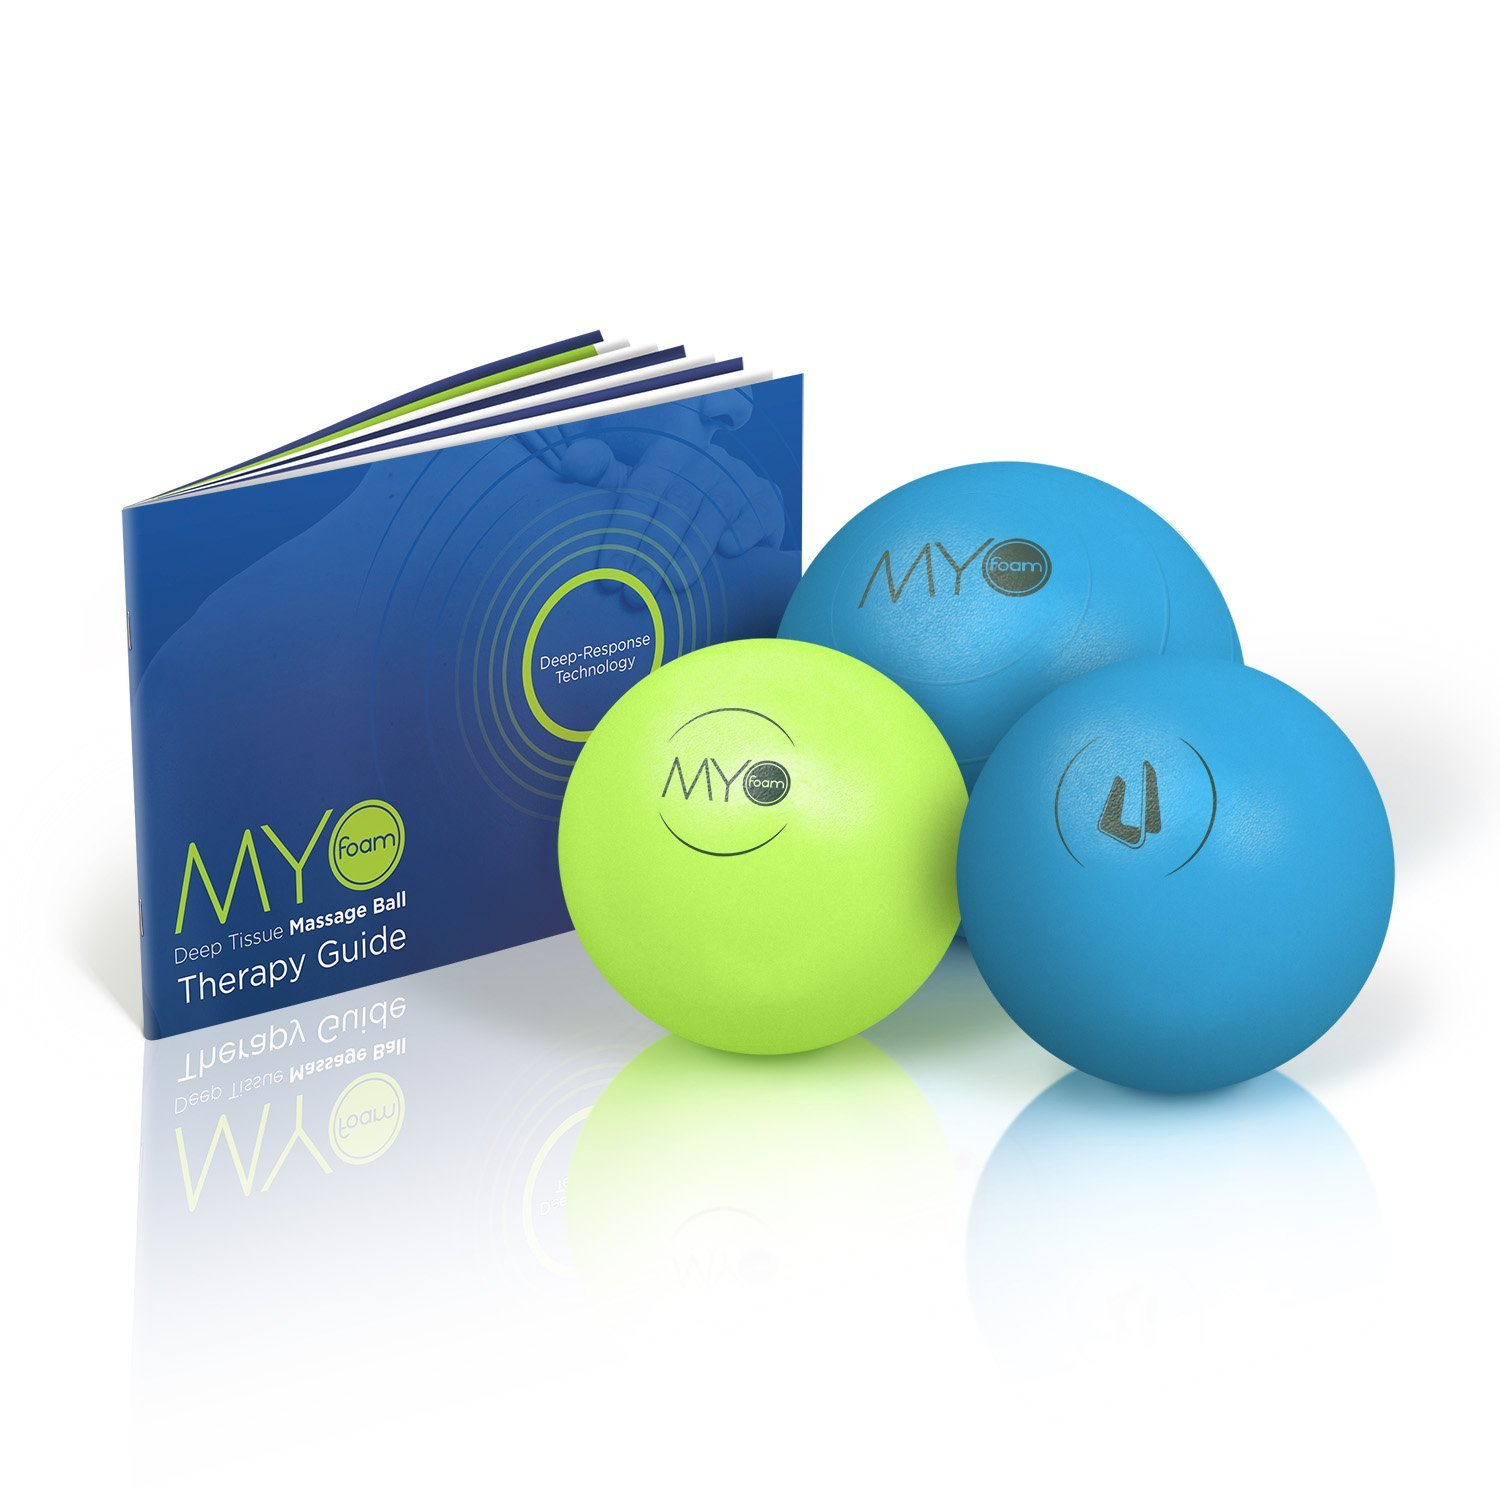 "Deep Tissue Massage Balls with Myofoam for Trigger Point Therapy with 5"" Mobility (3 Pack)"